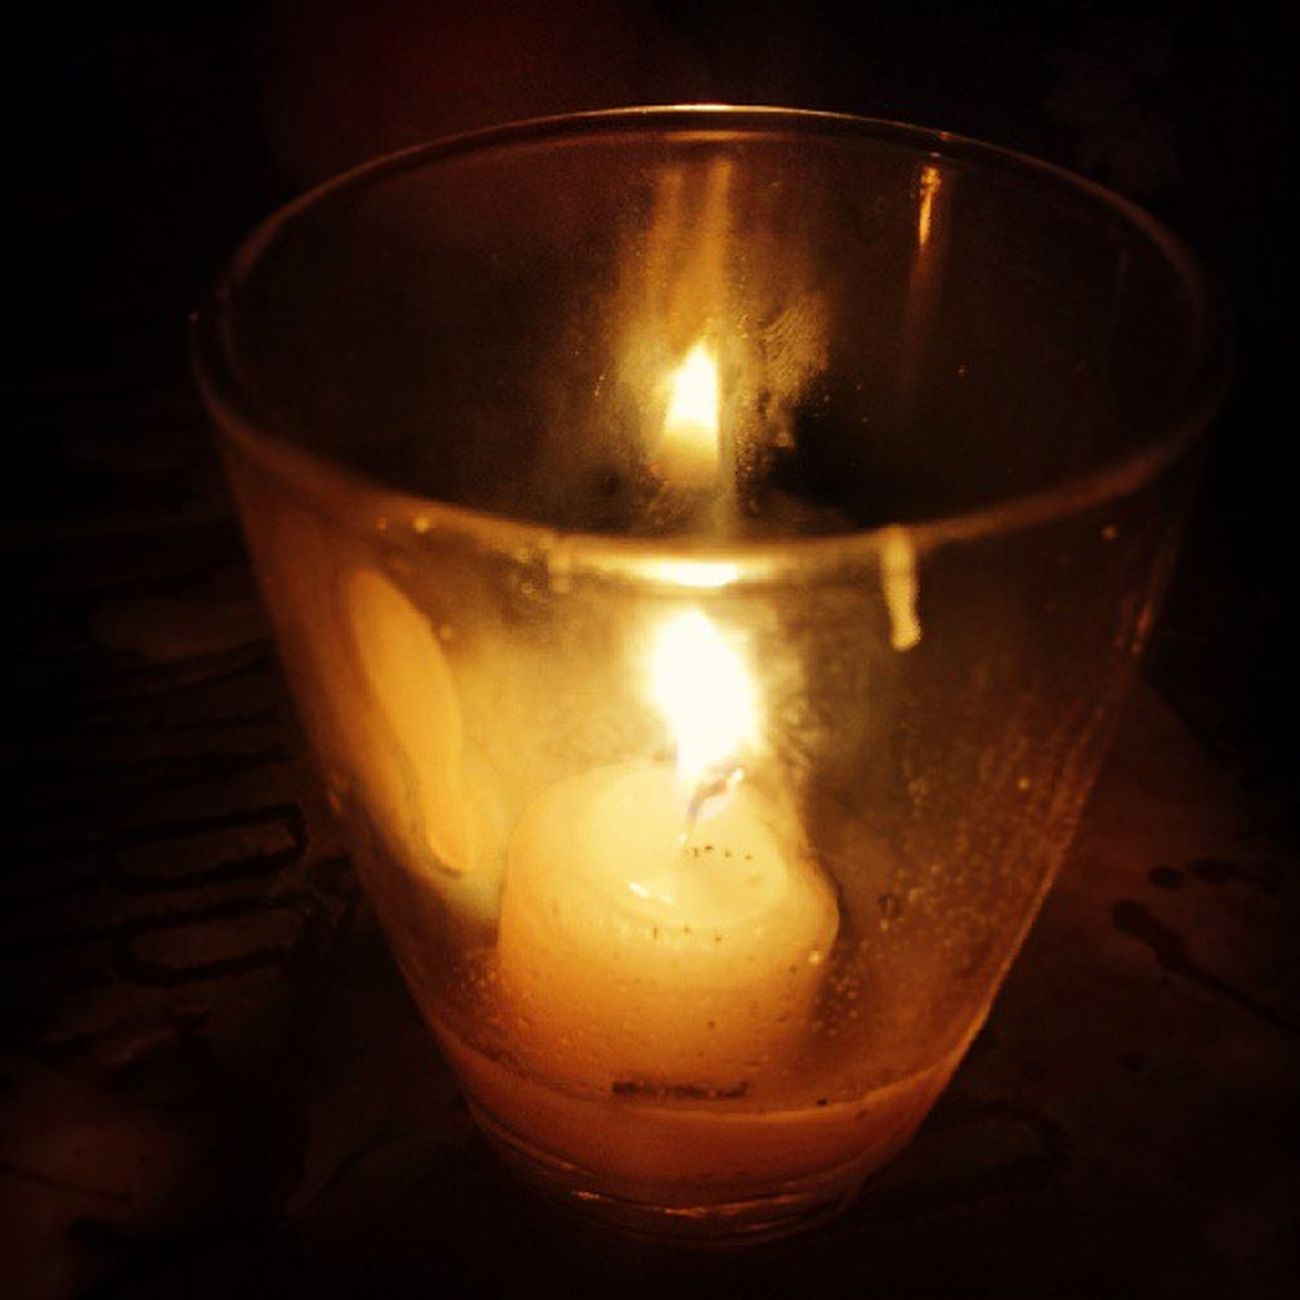 Lets pray and light a candle for our departed loved ones Lightology AllSaintsDay Nov1